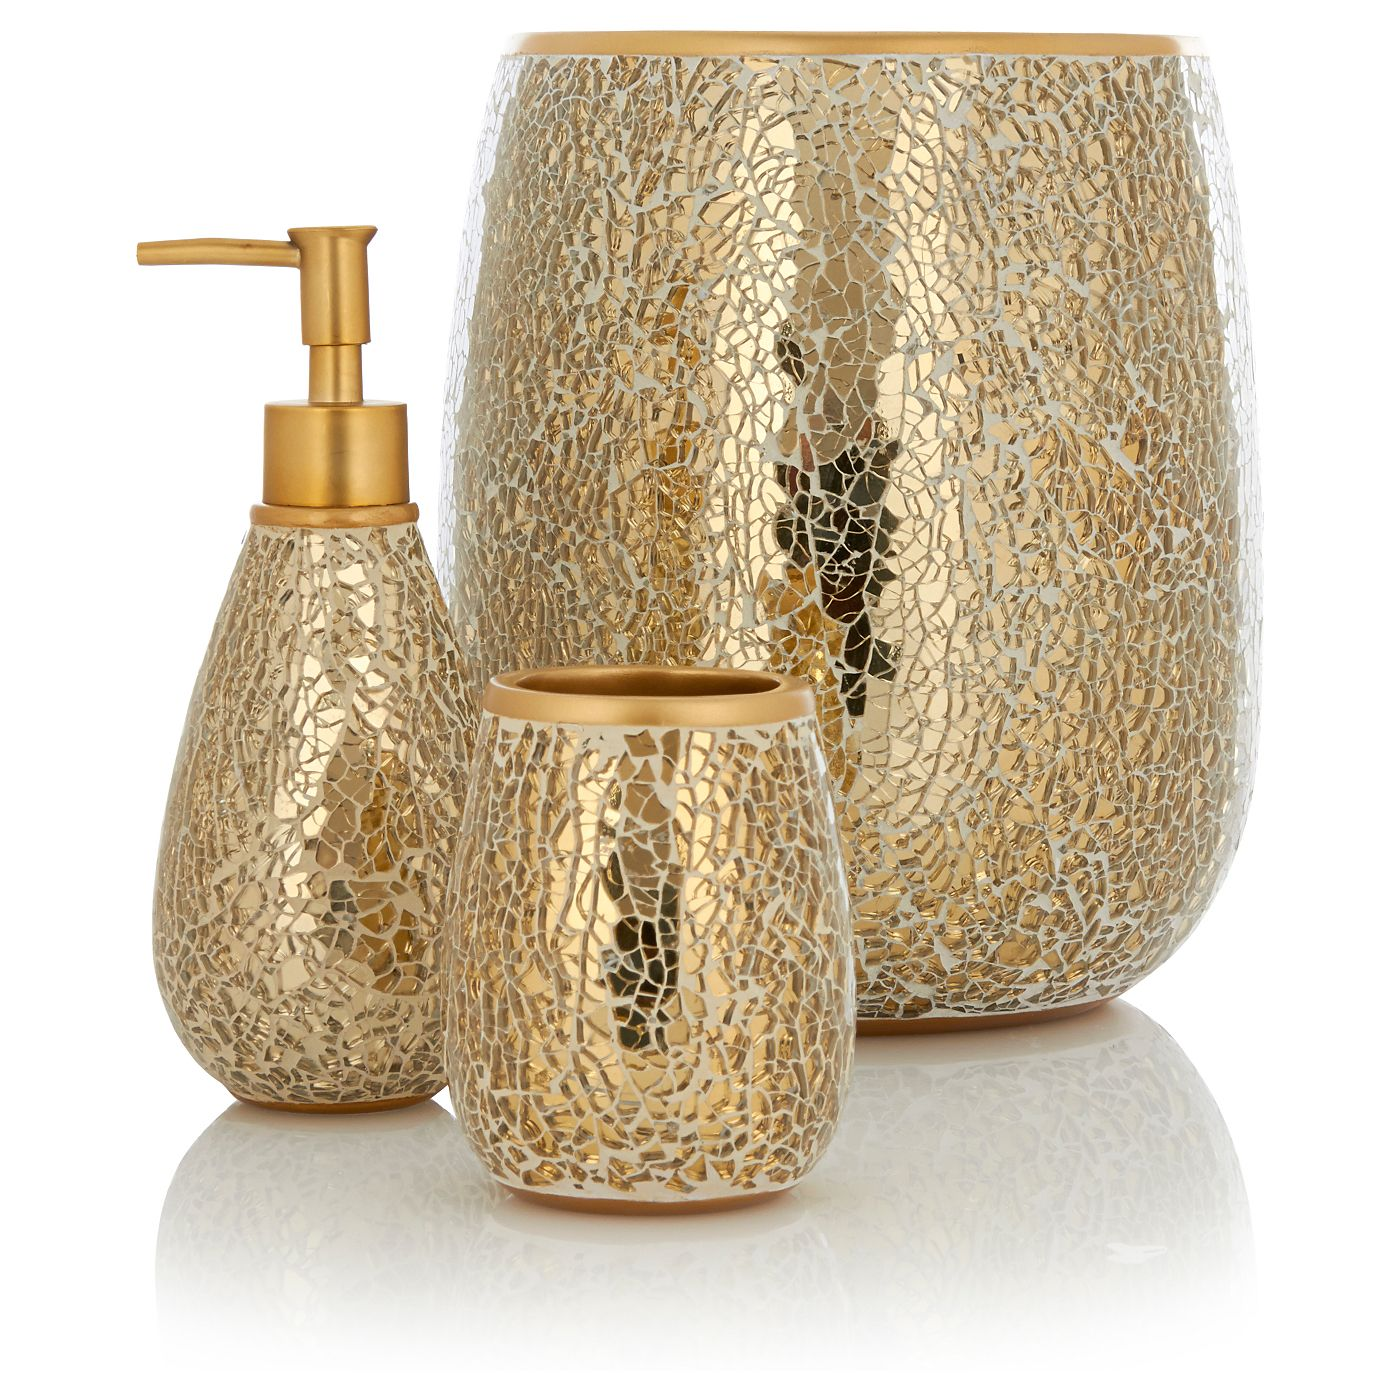 George Home Accessories Gold Sparkle Bathroom Accessories Asda Direct Gold Bathroom Accessories Gold Bathroom Copper Bathroom Accessories